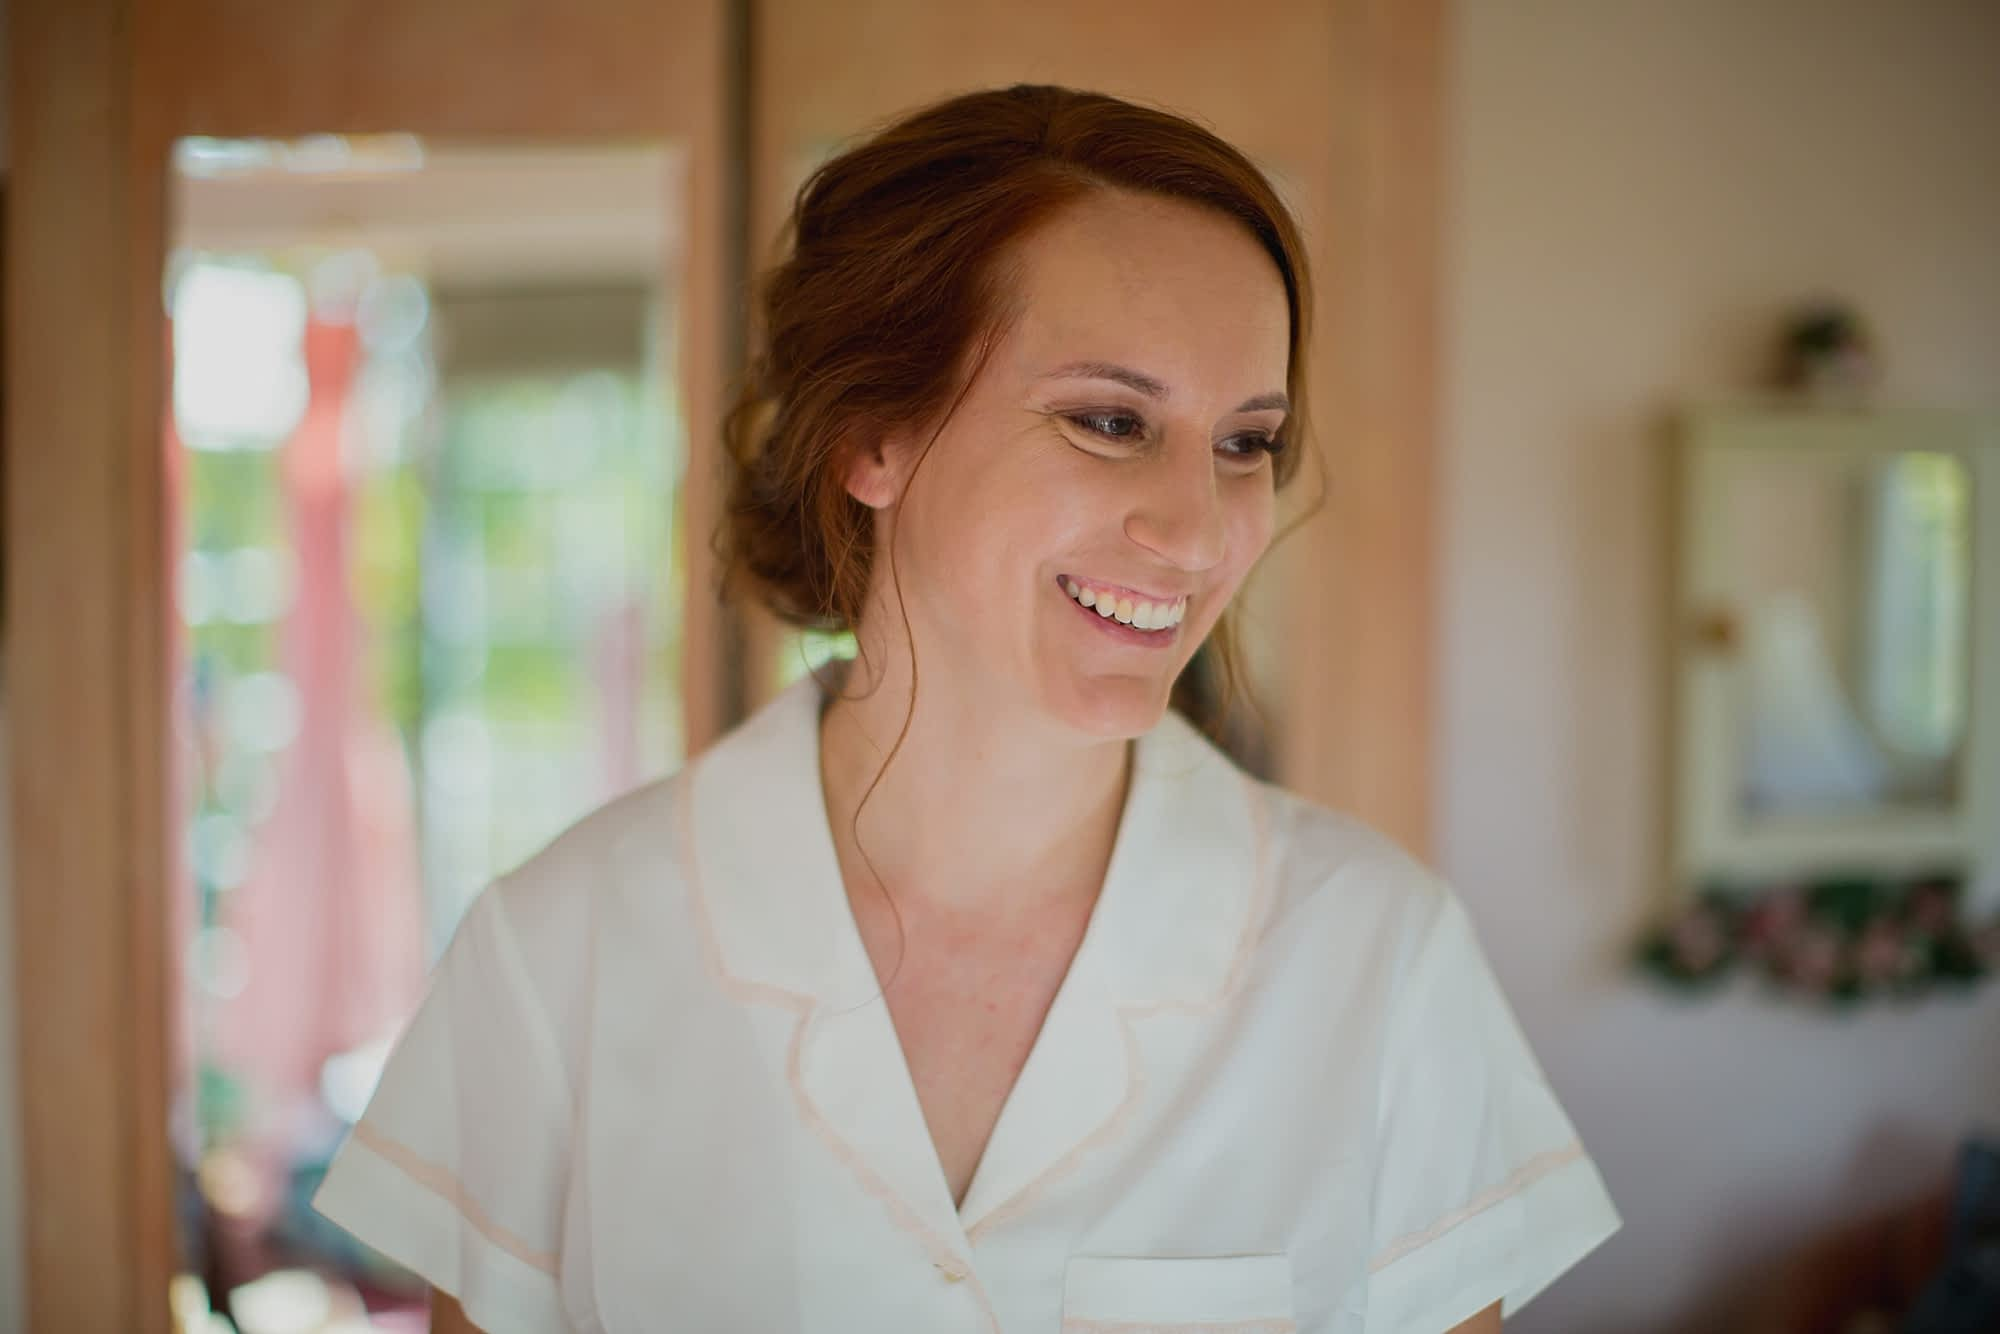 The bride smiles in her white button up shirt and her out of focus blush gown can be seen hanging in the doorway behind her.